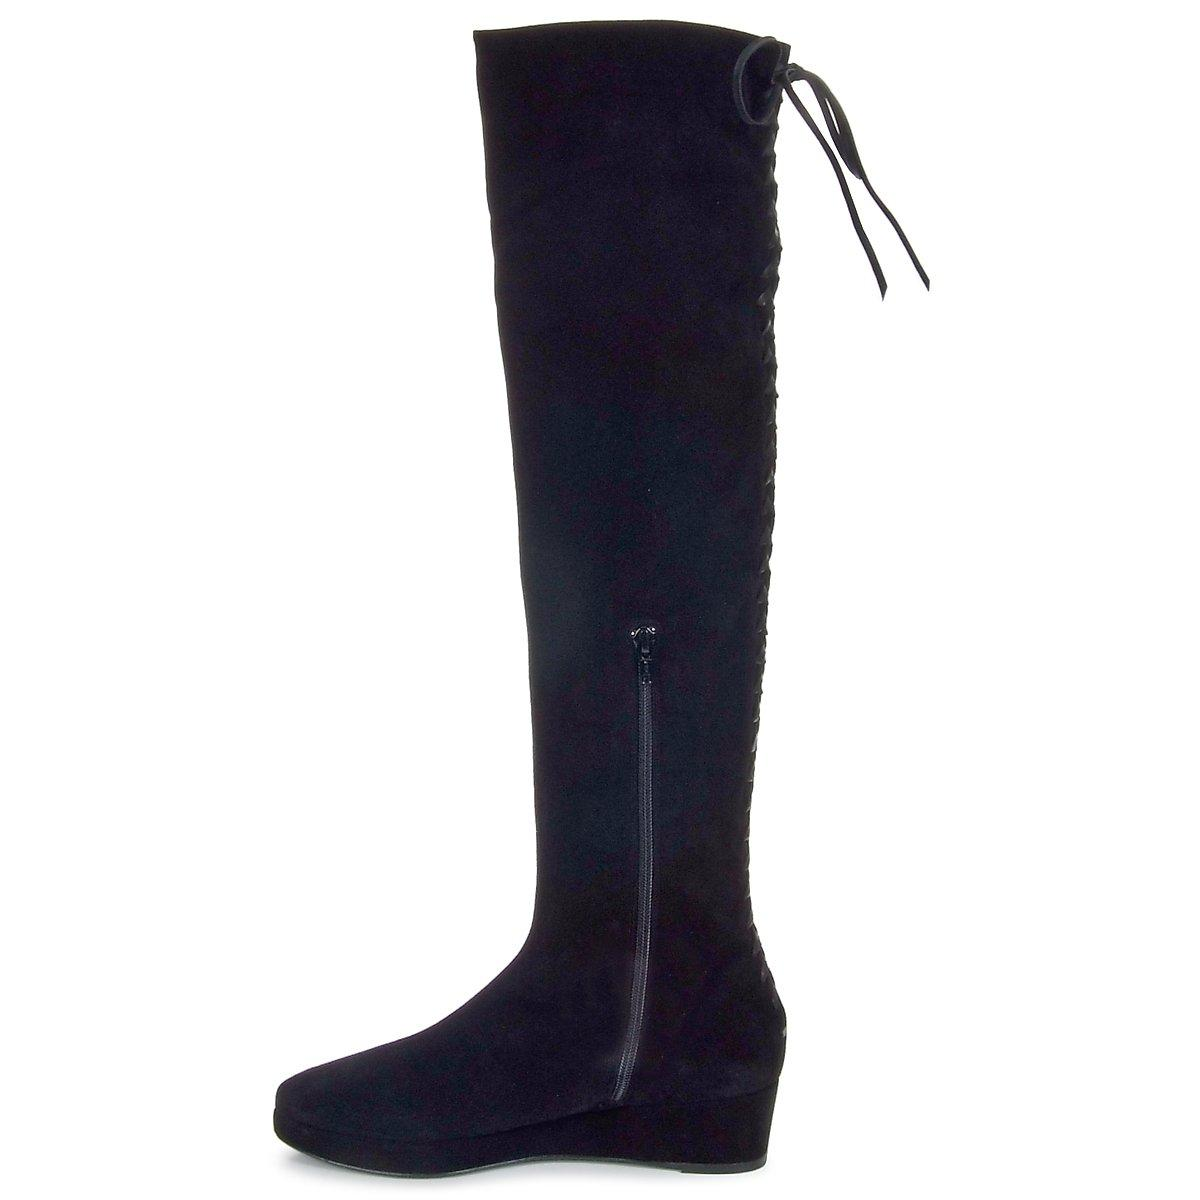 Etro Nefer High Boots in Black